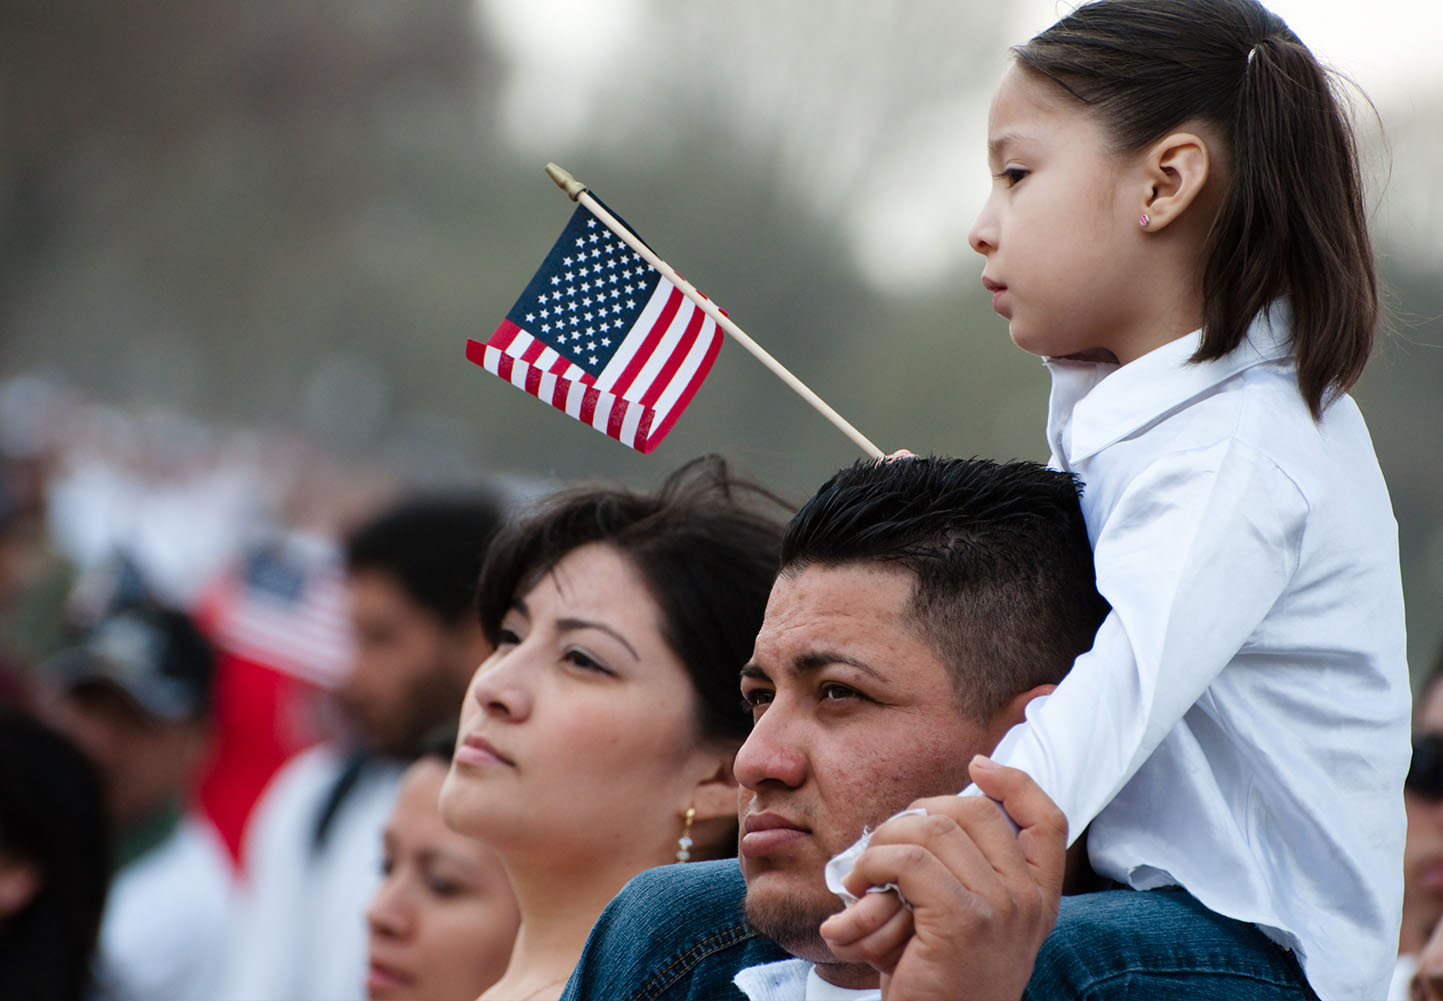 Latino family at a parade, child holding an American flag